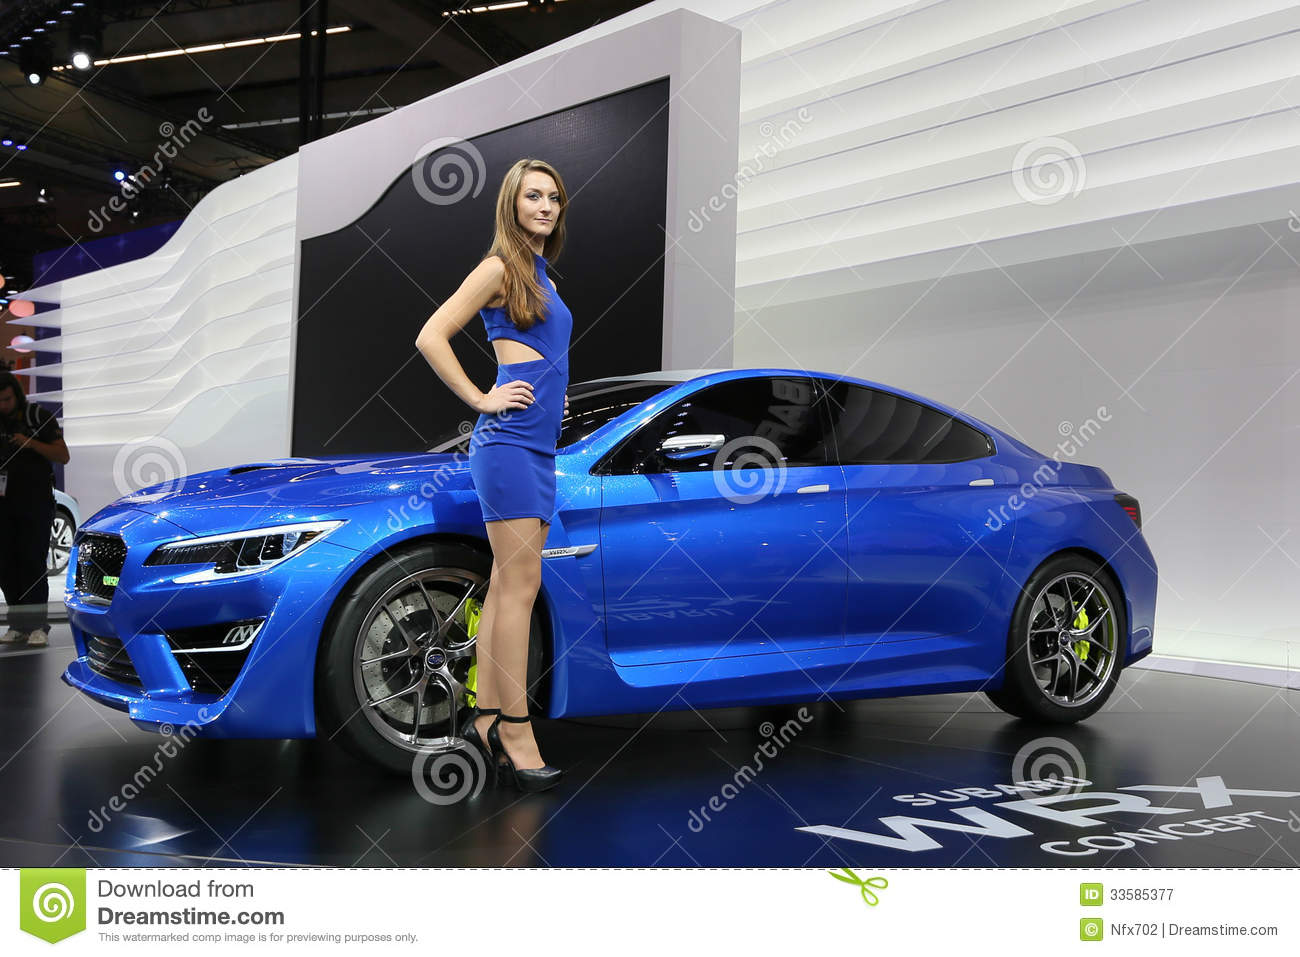 Subaru Wrx Concept Shown At The Editorial Photography